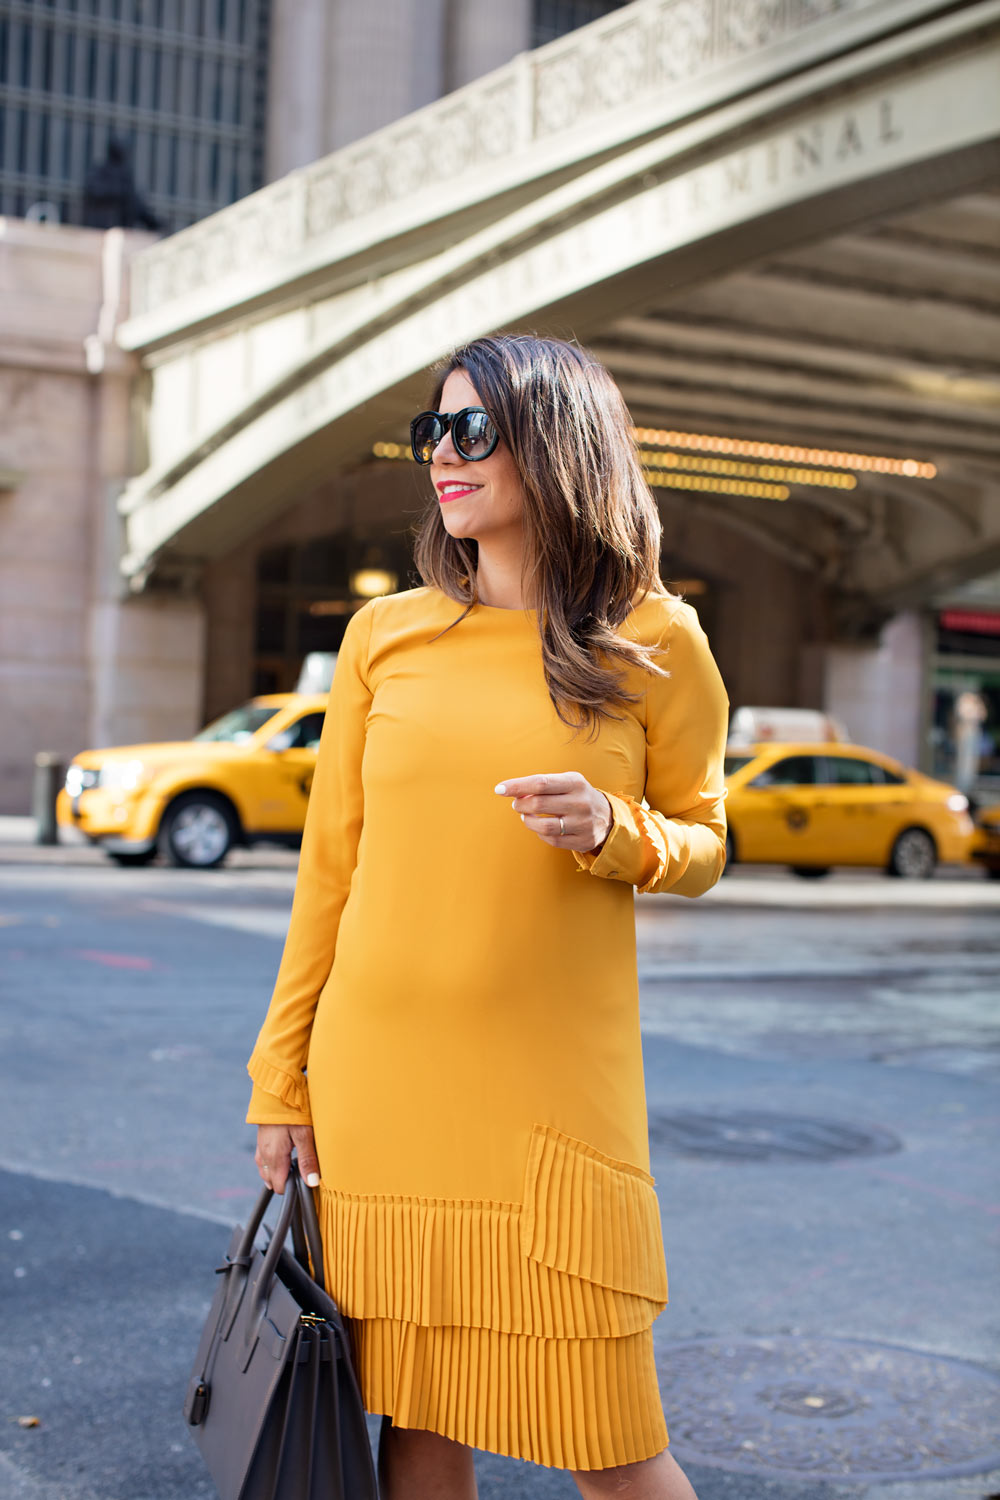 96f7723a7c asos mustard dress workwear what to wear to work hire a mentor career  contessa new york